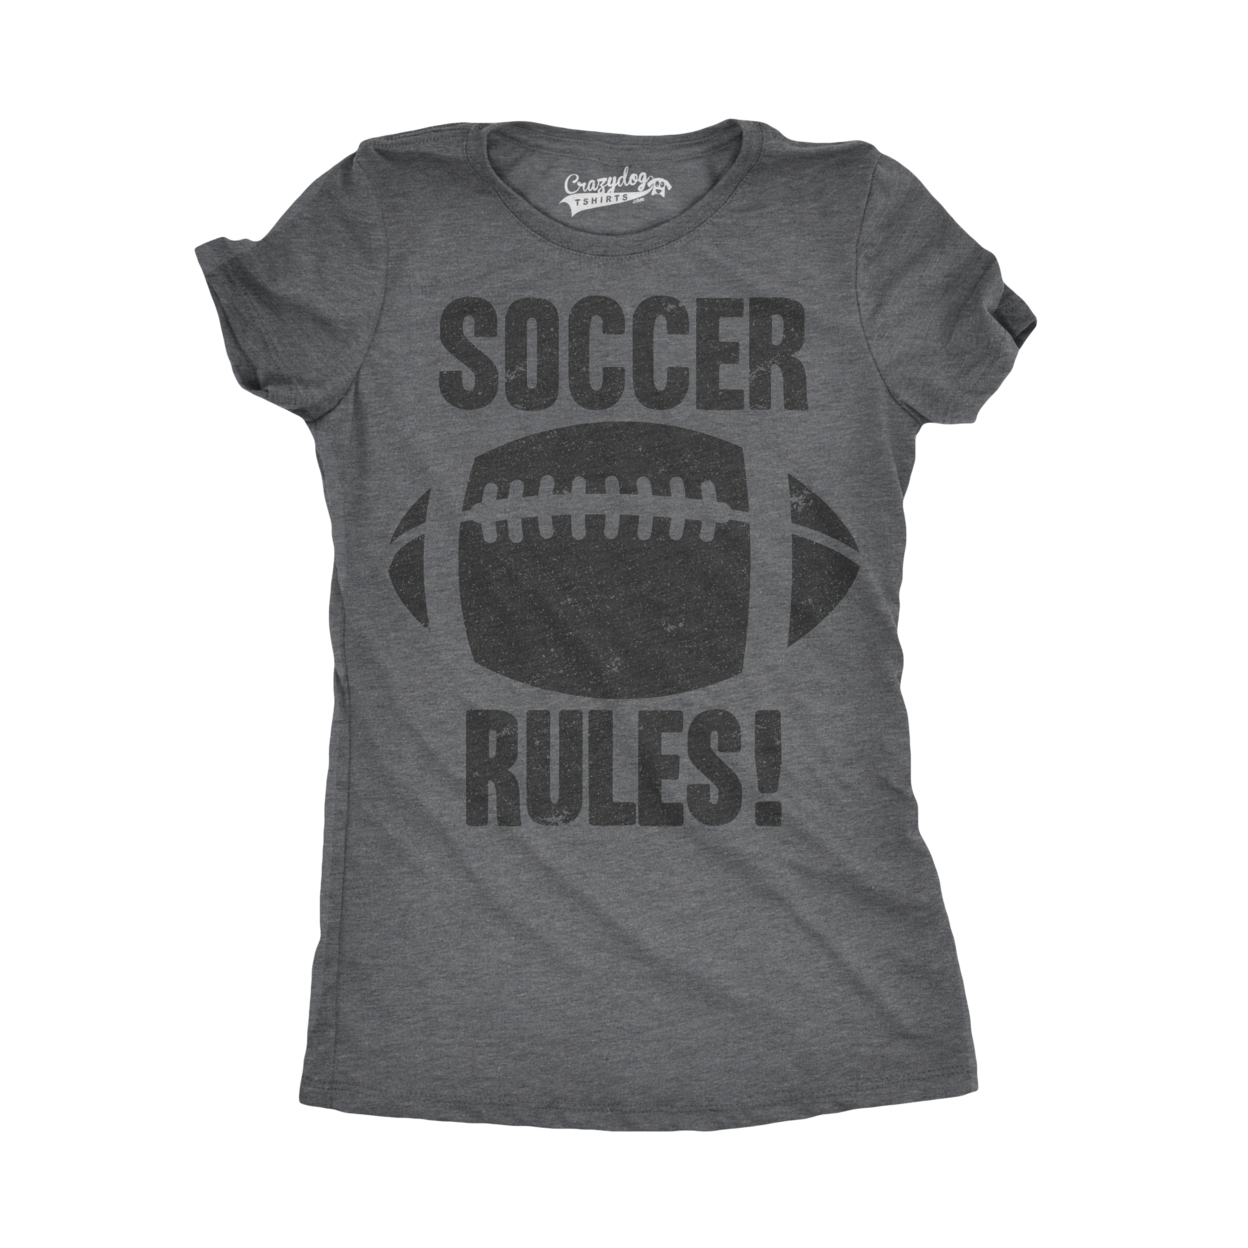 Womens Soccer Rules Funny Football European Soccer Sports Athlete T shirt 58a6003f2a00e4221007bbe1